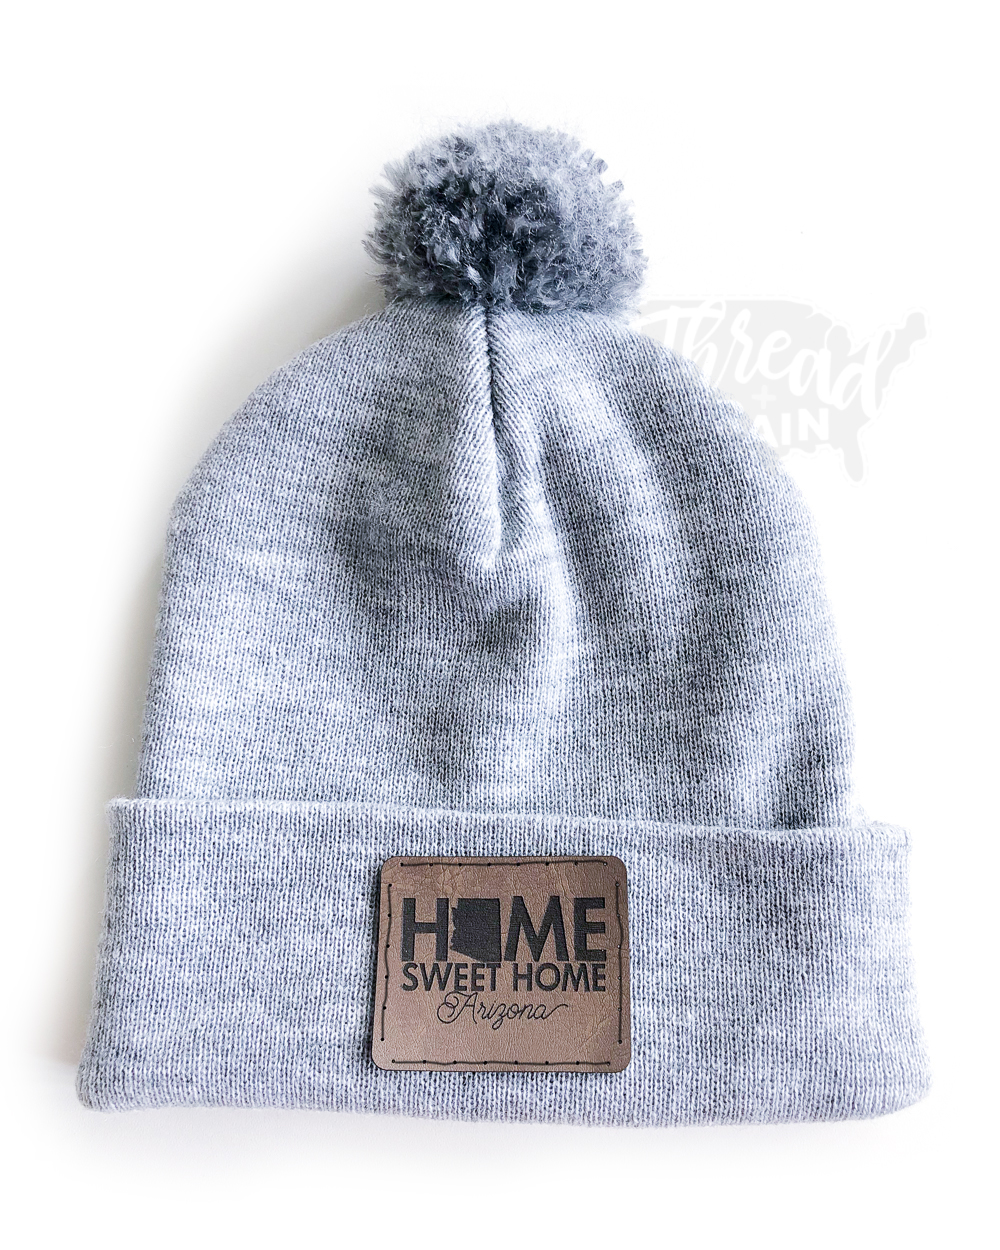 Arizona :: Home, Sweet Home PATCHED HAT